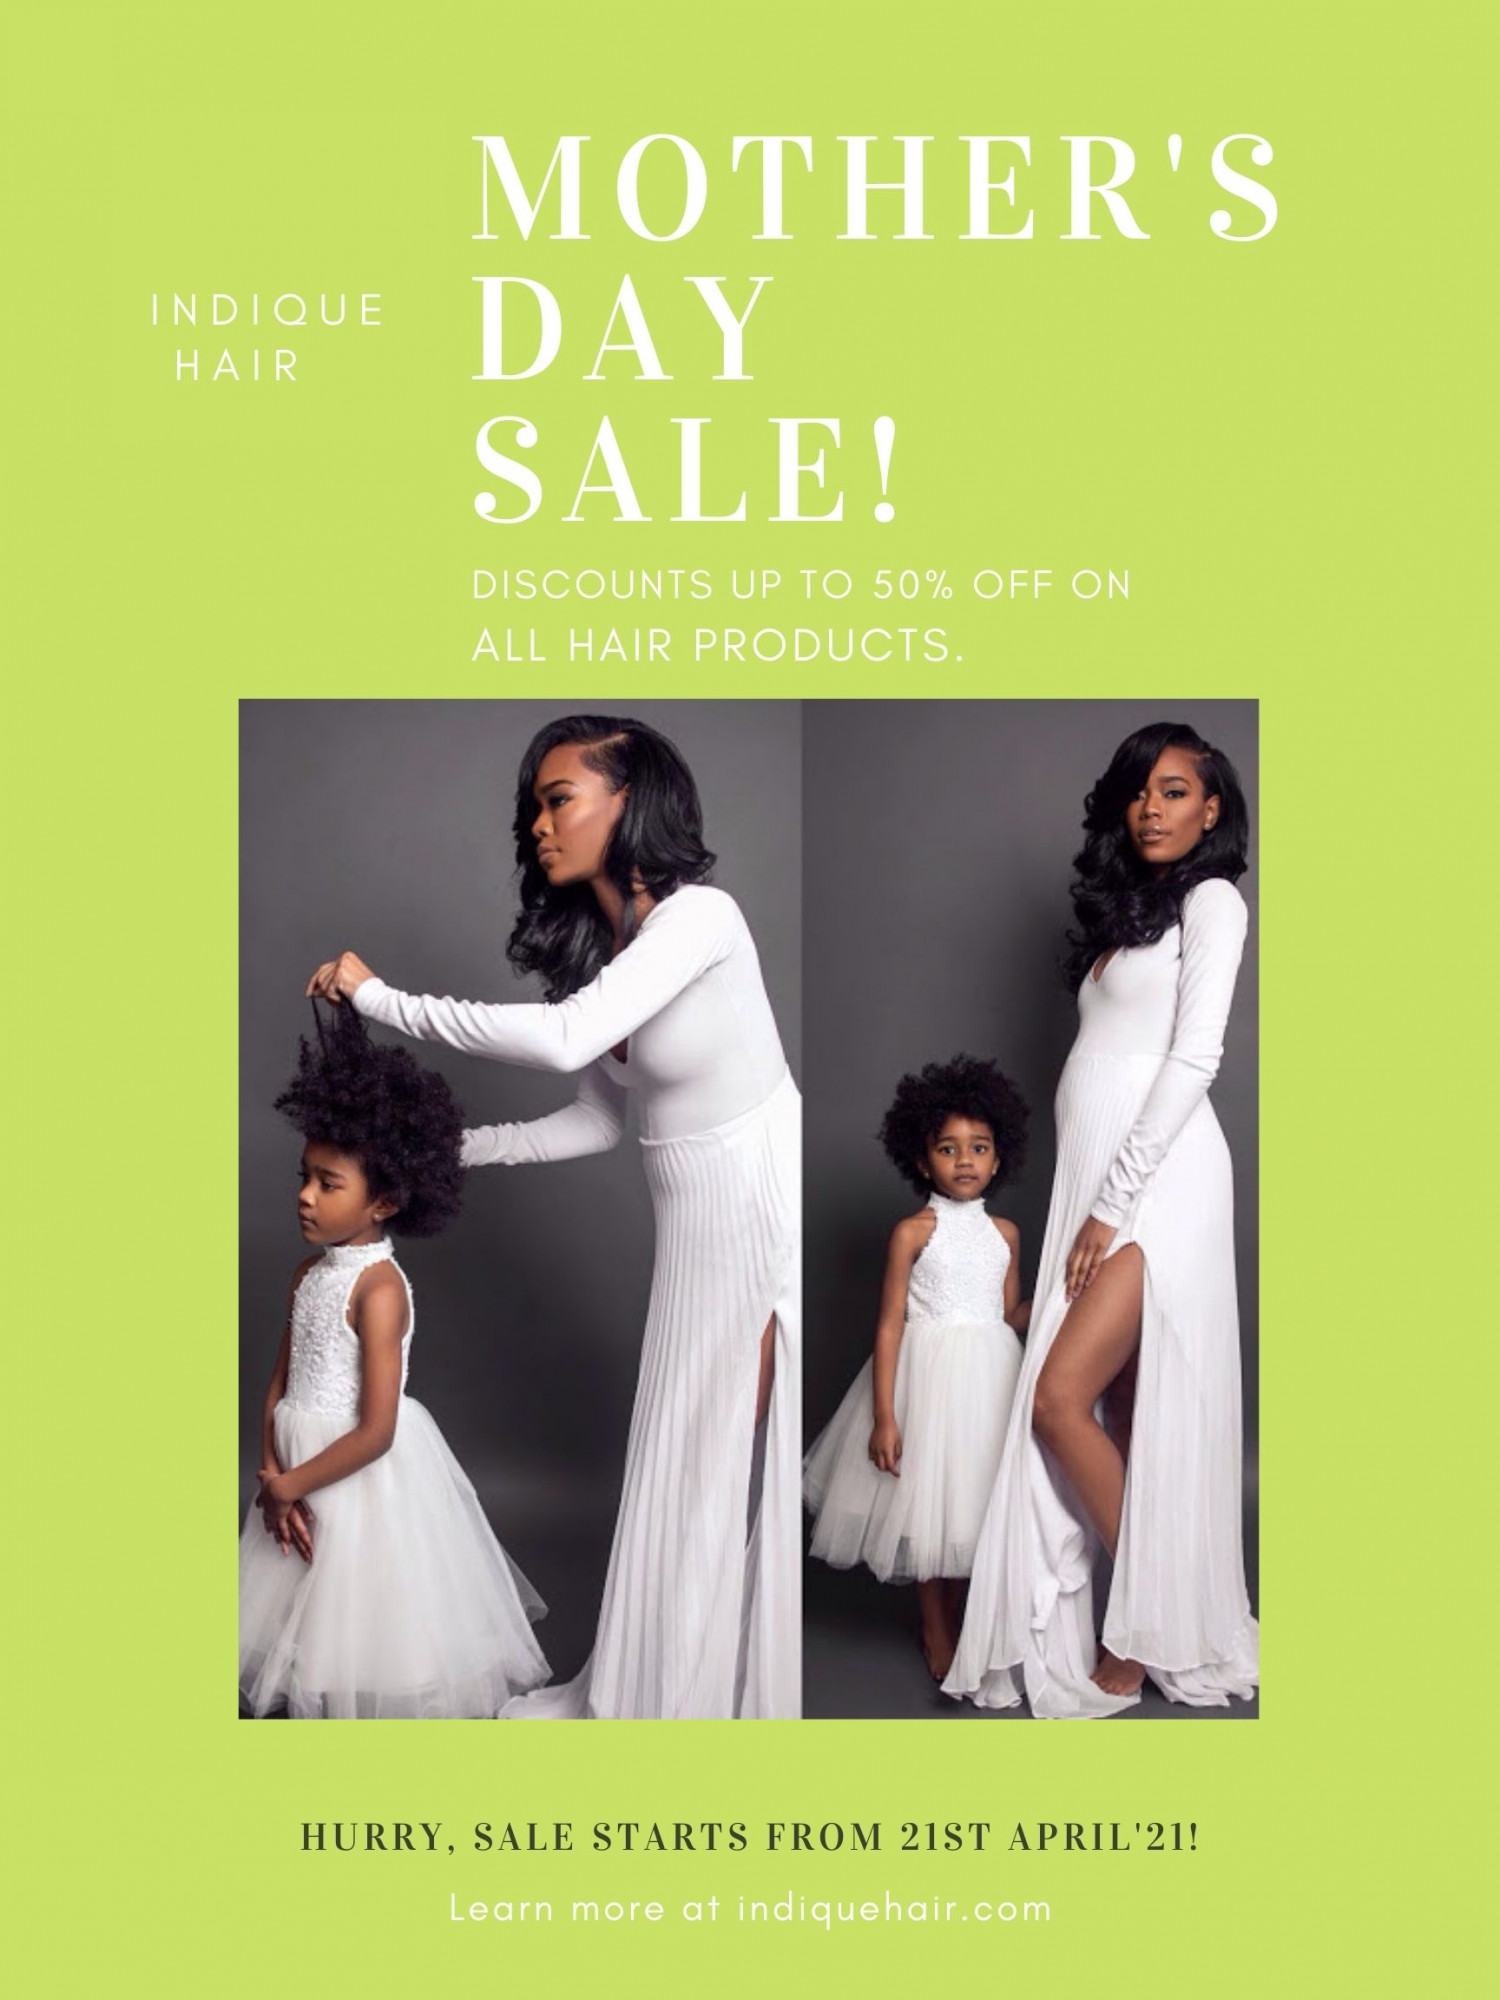 Save Upto 50% off on this Mother's Day by Indique Hair Infographic